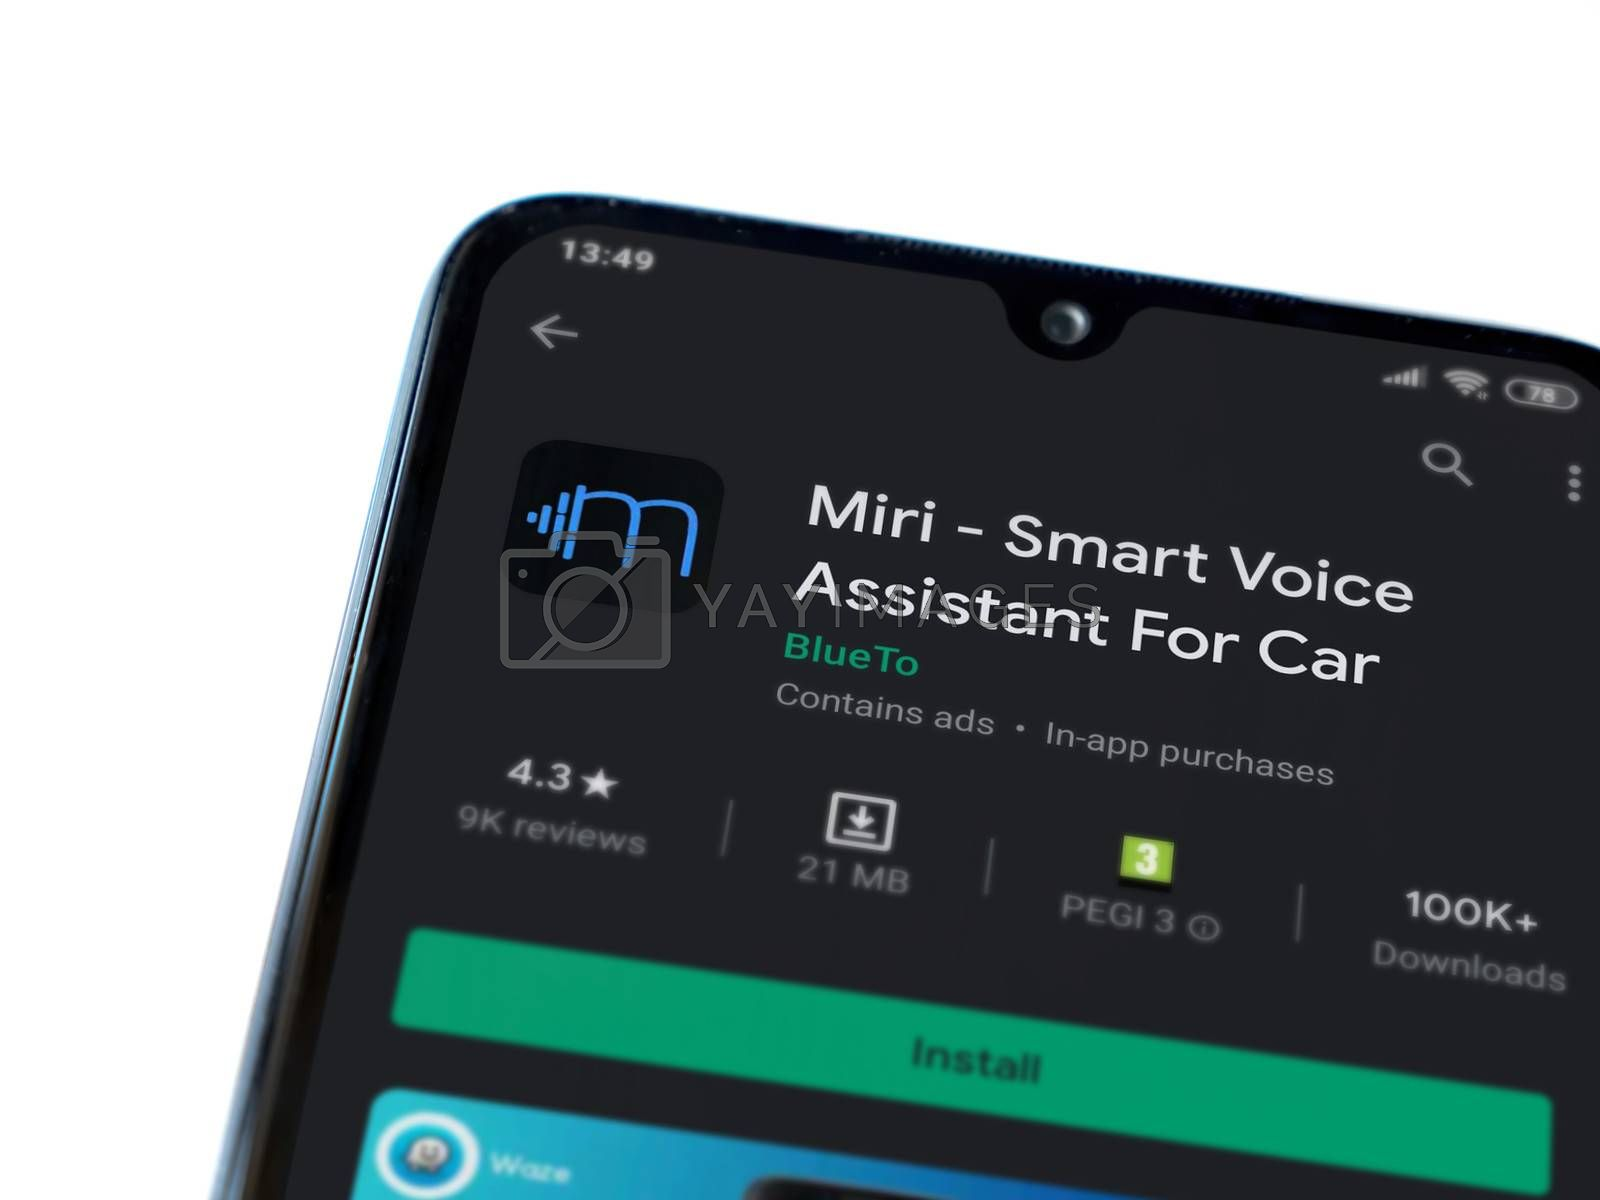 Lod, Israel - July 8, 2020: Miri app play store page on the display of a black mobile smartphone isolated on white background. Top view flat lay with copy space.